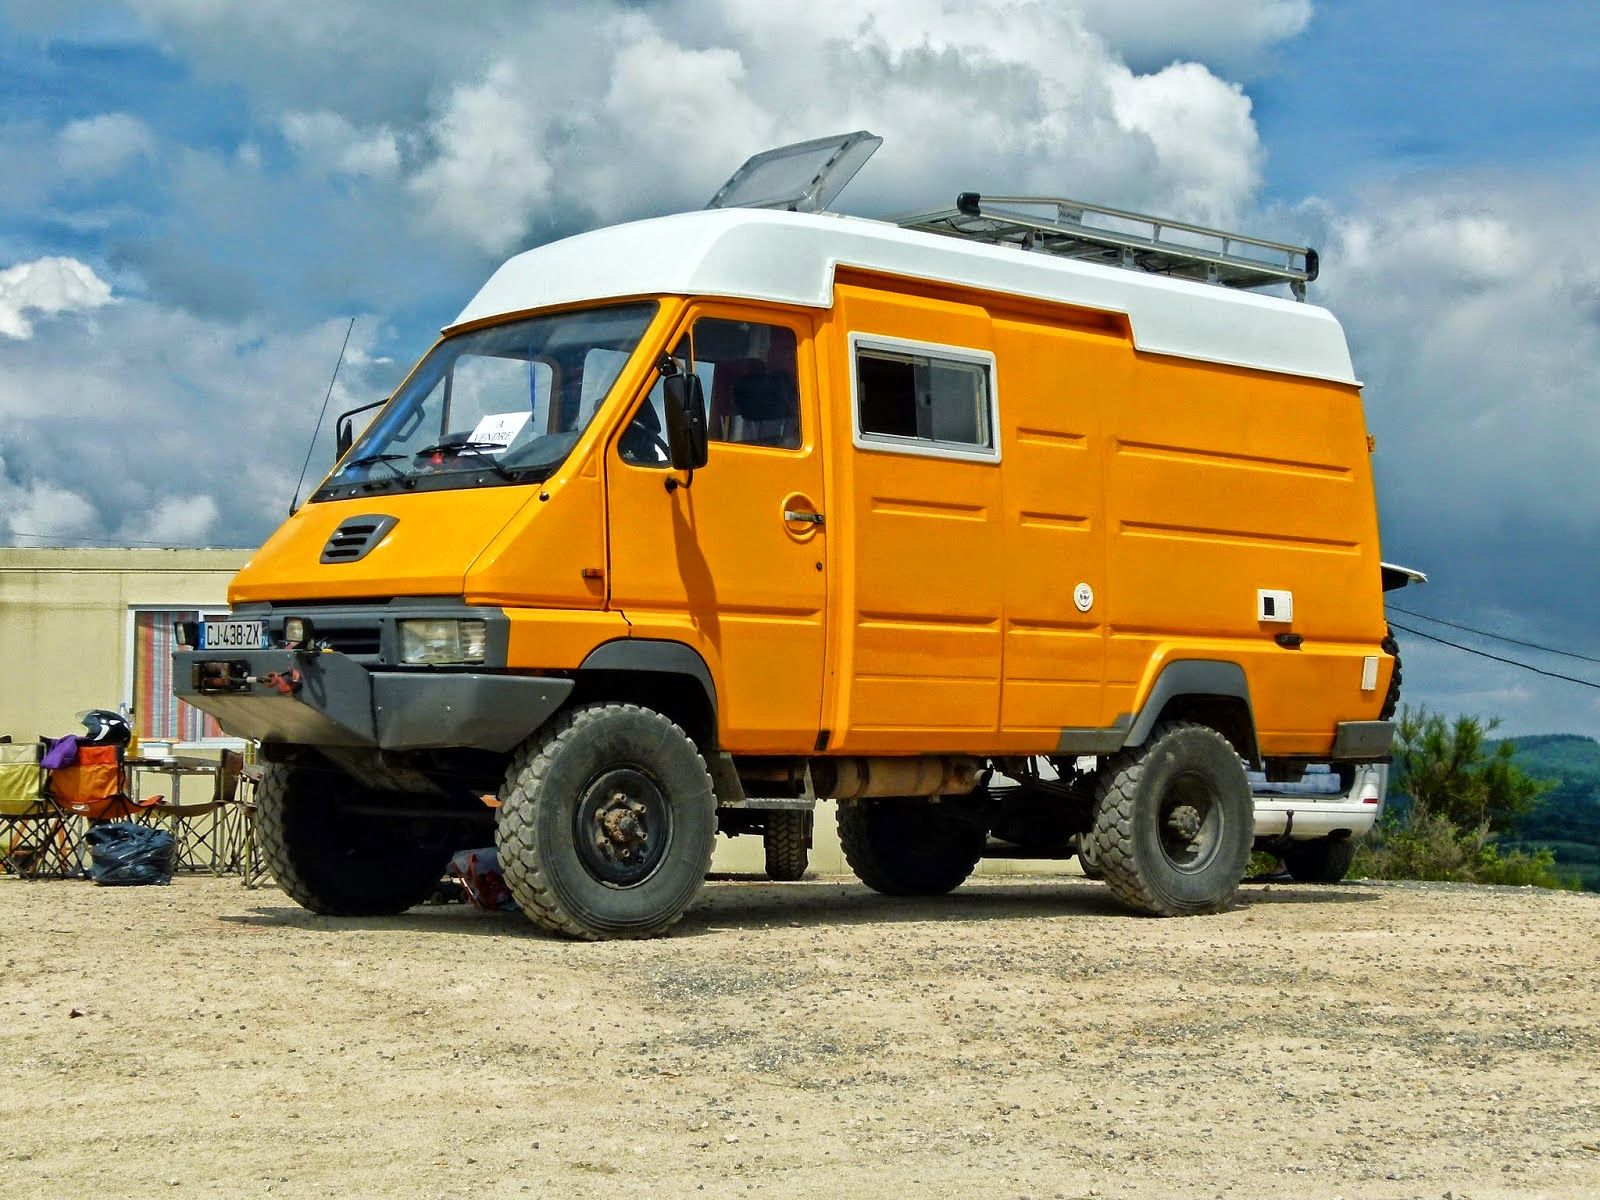 land roamer world tour campers with attitude pinterest 4x4 expedition vehicle and offroad. Black Bedroom Furniture Sets. Home Design Ideas